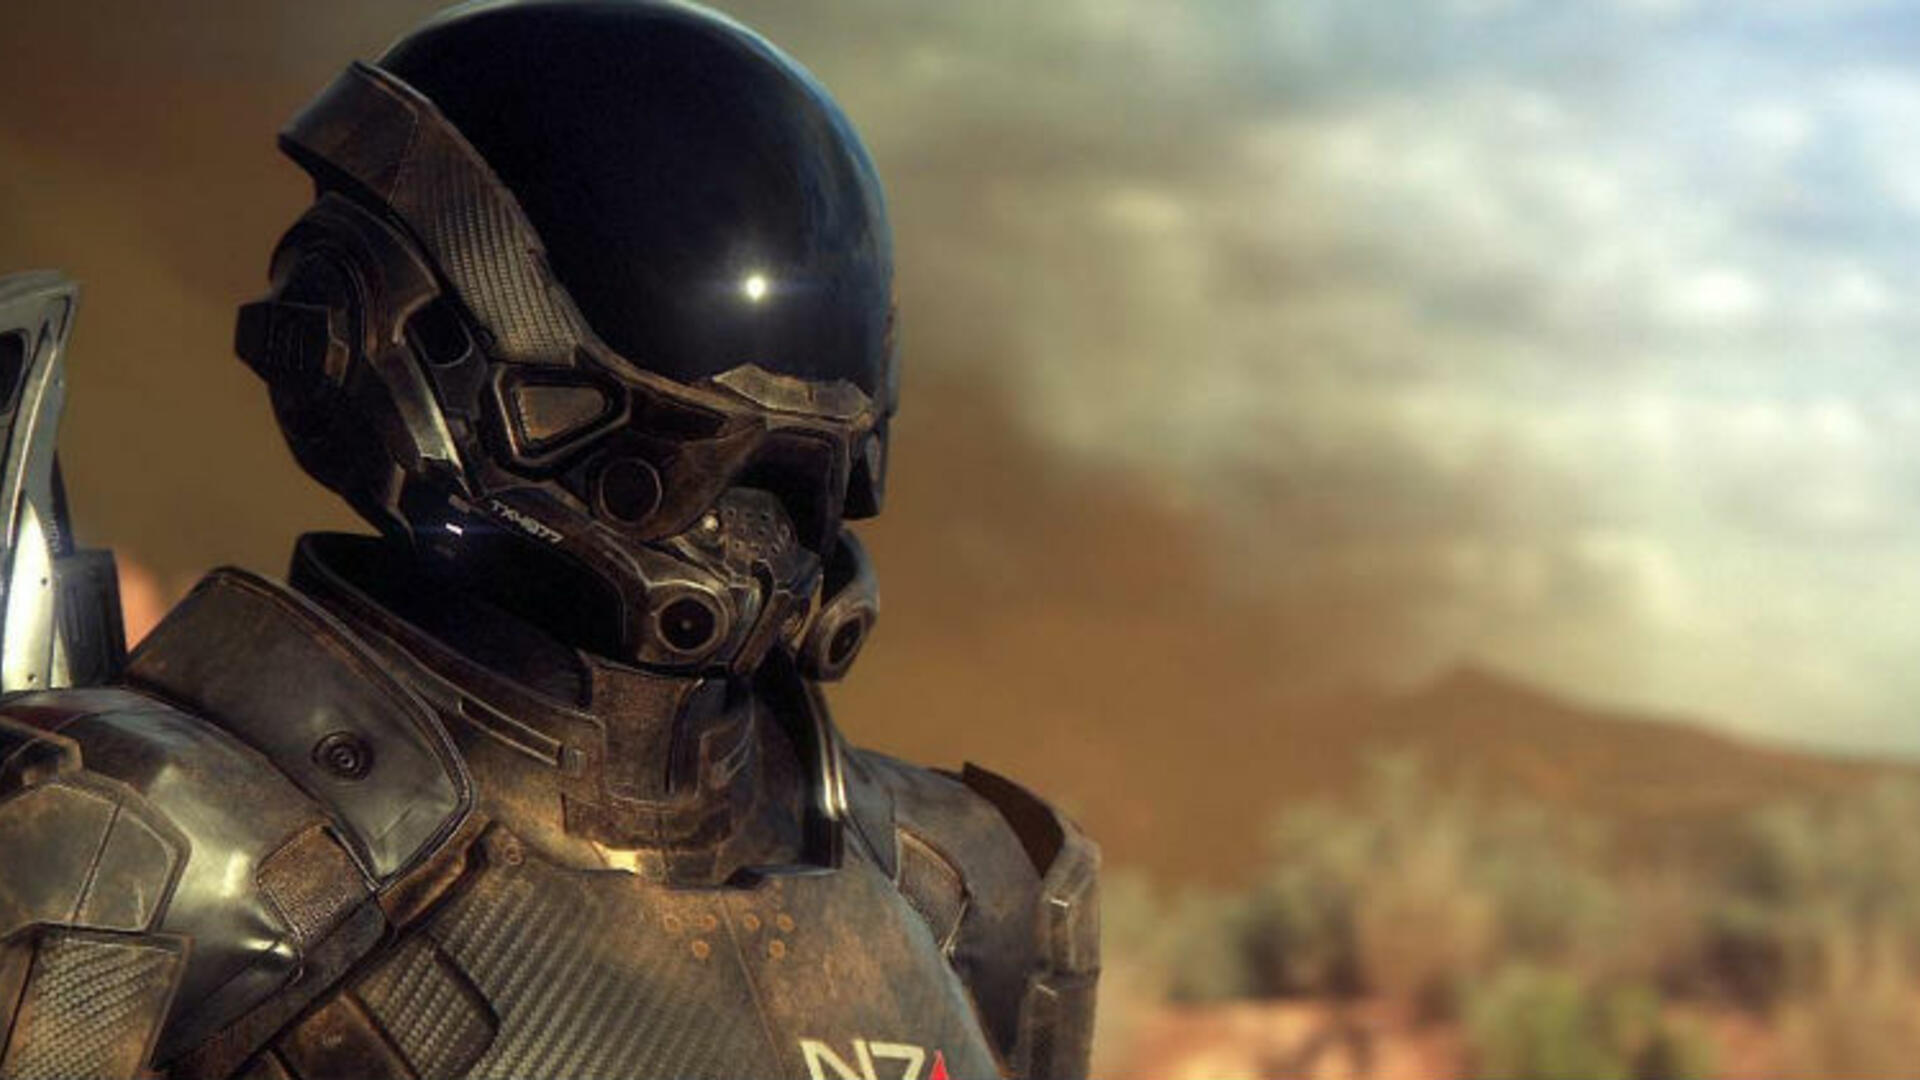 What We Know So Far About Mass Effect Andromeda